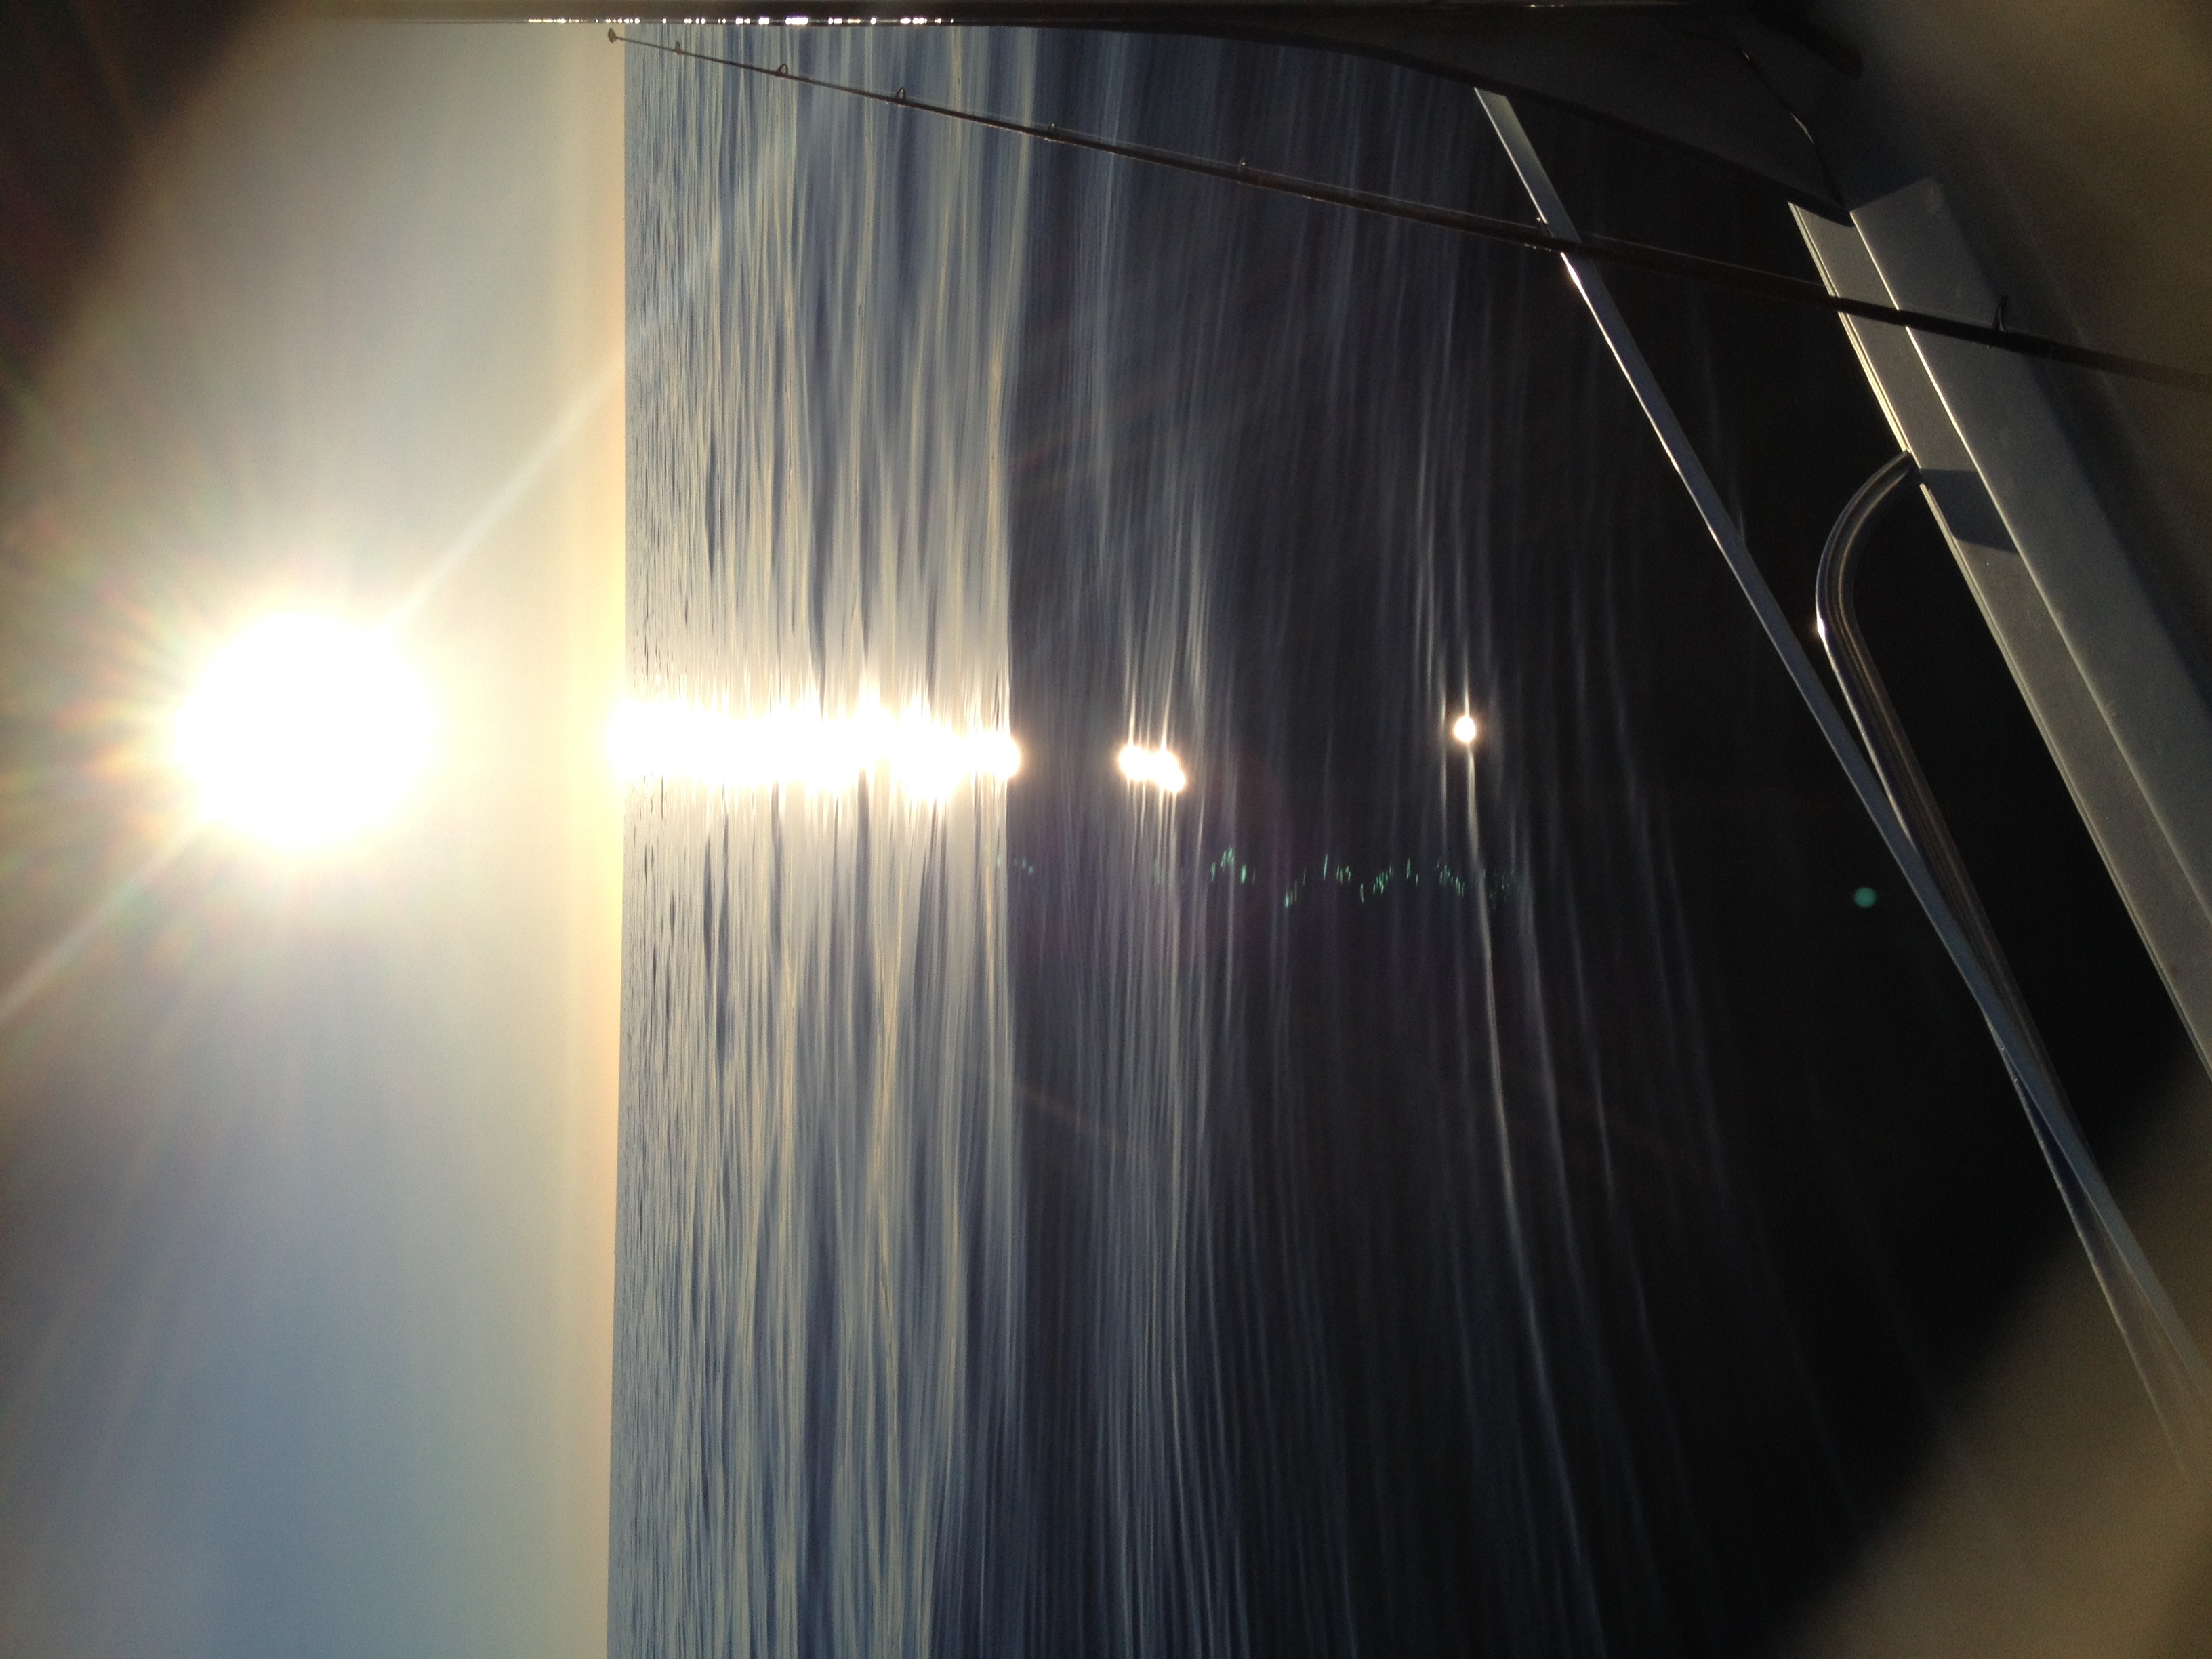 The sunset from Rowey's boat